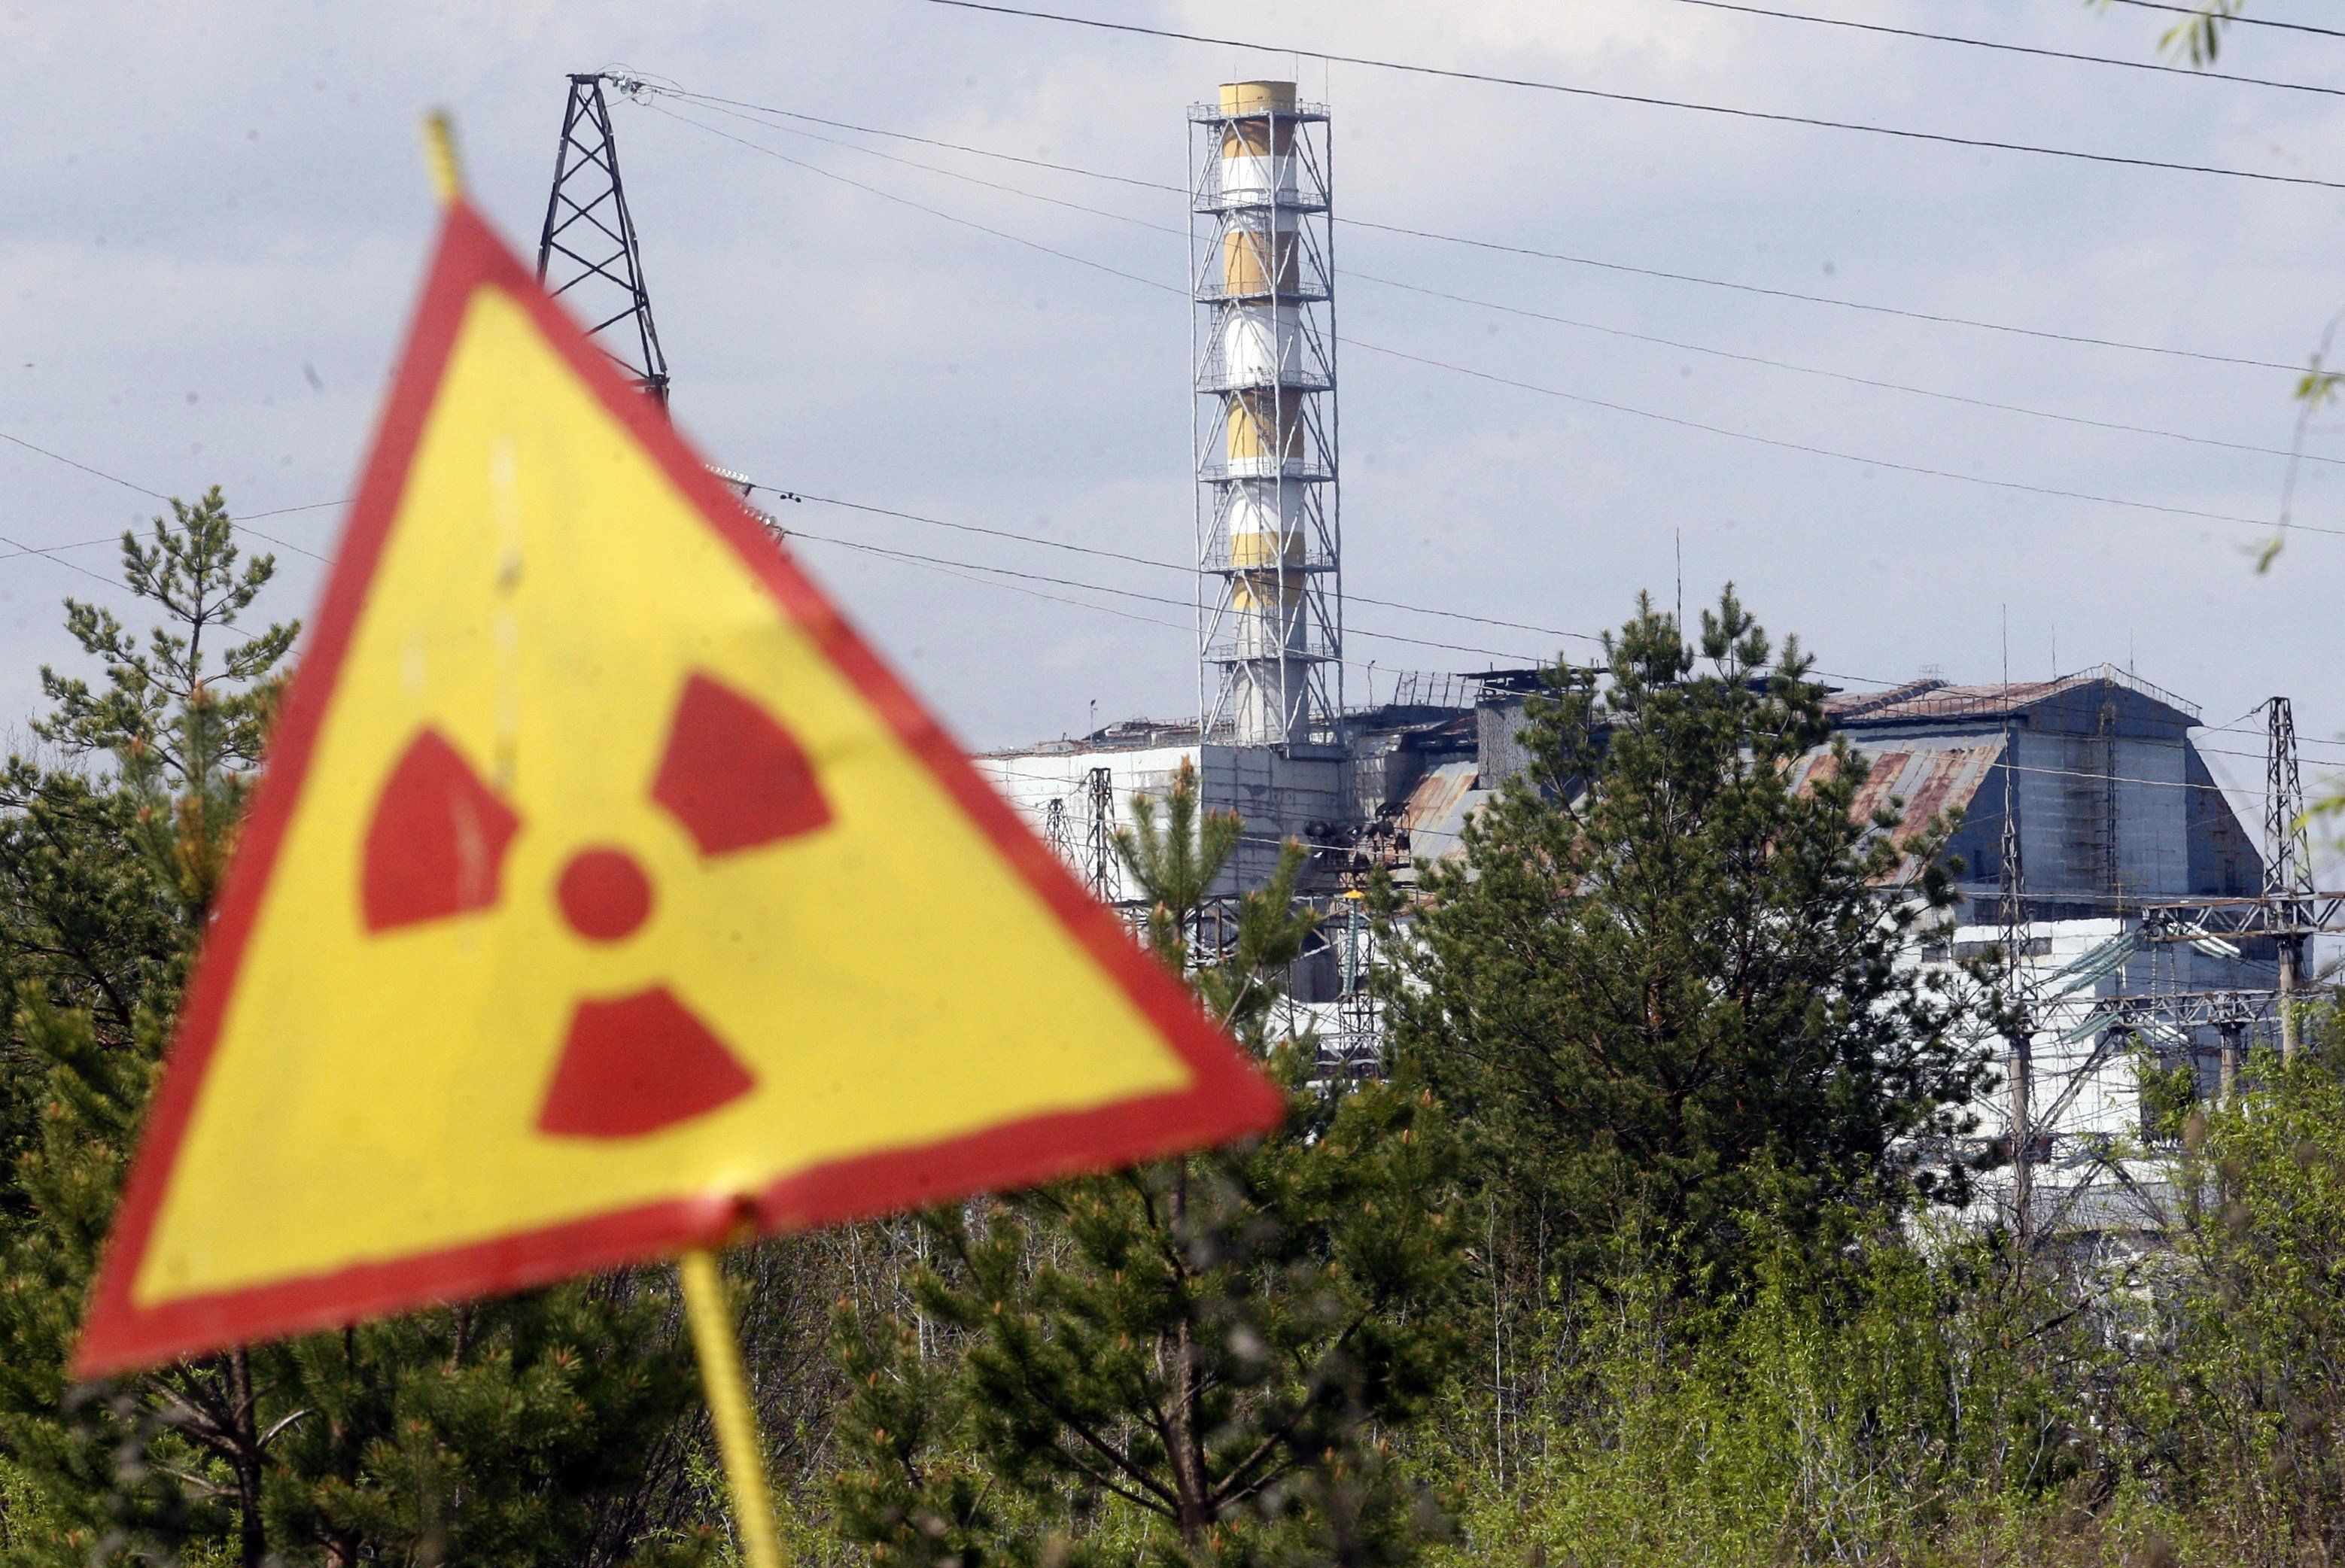 A radiation sign is seen in front of the Chernobyl Nuclear Power plant after firefighters have nearly extinguished a forest fire near Chernobyl plant, which came within about 20 kilometres (12 miles) of Chernobyl after breaking out on April 28, 2015, but officials said it posed no danger to the plant and radiation levels in the zone remained unchanged. AFP PHOTO / ANATOLII STEPANOV        (Photo credit should read ANATOLII STEPANOV/AFP/Getty Images)